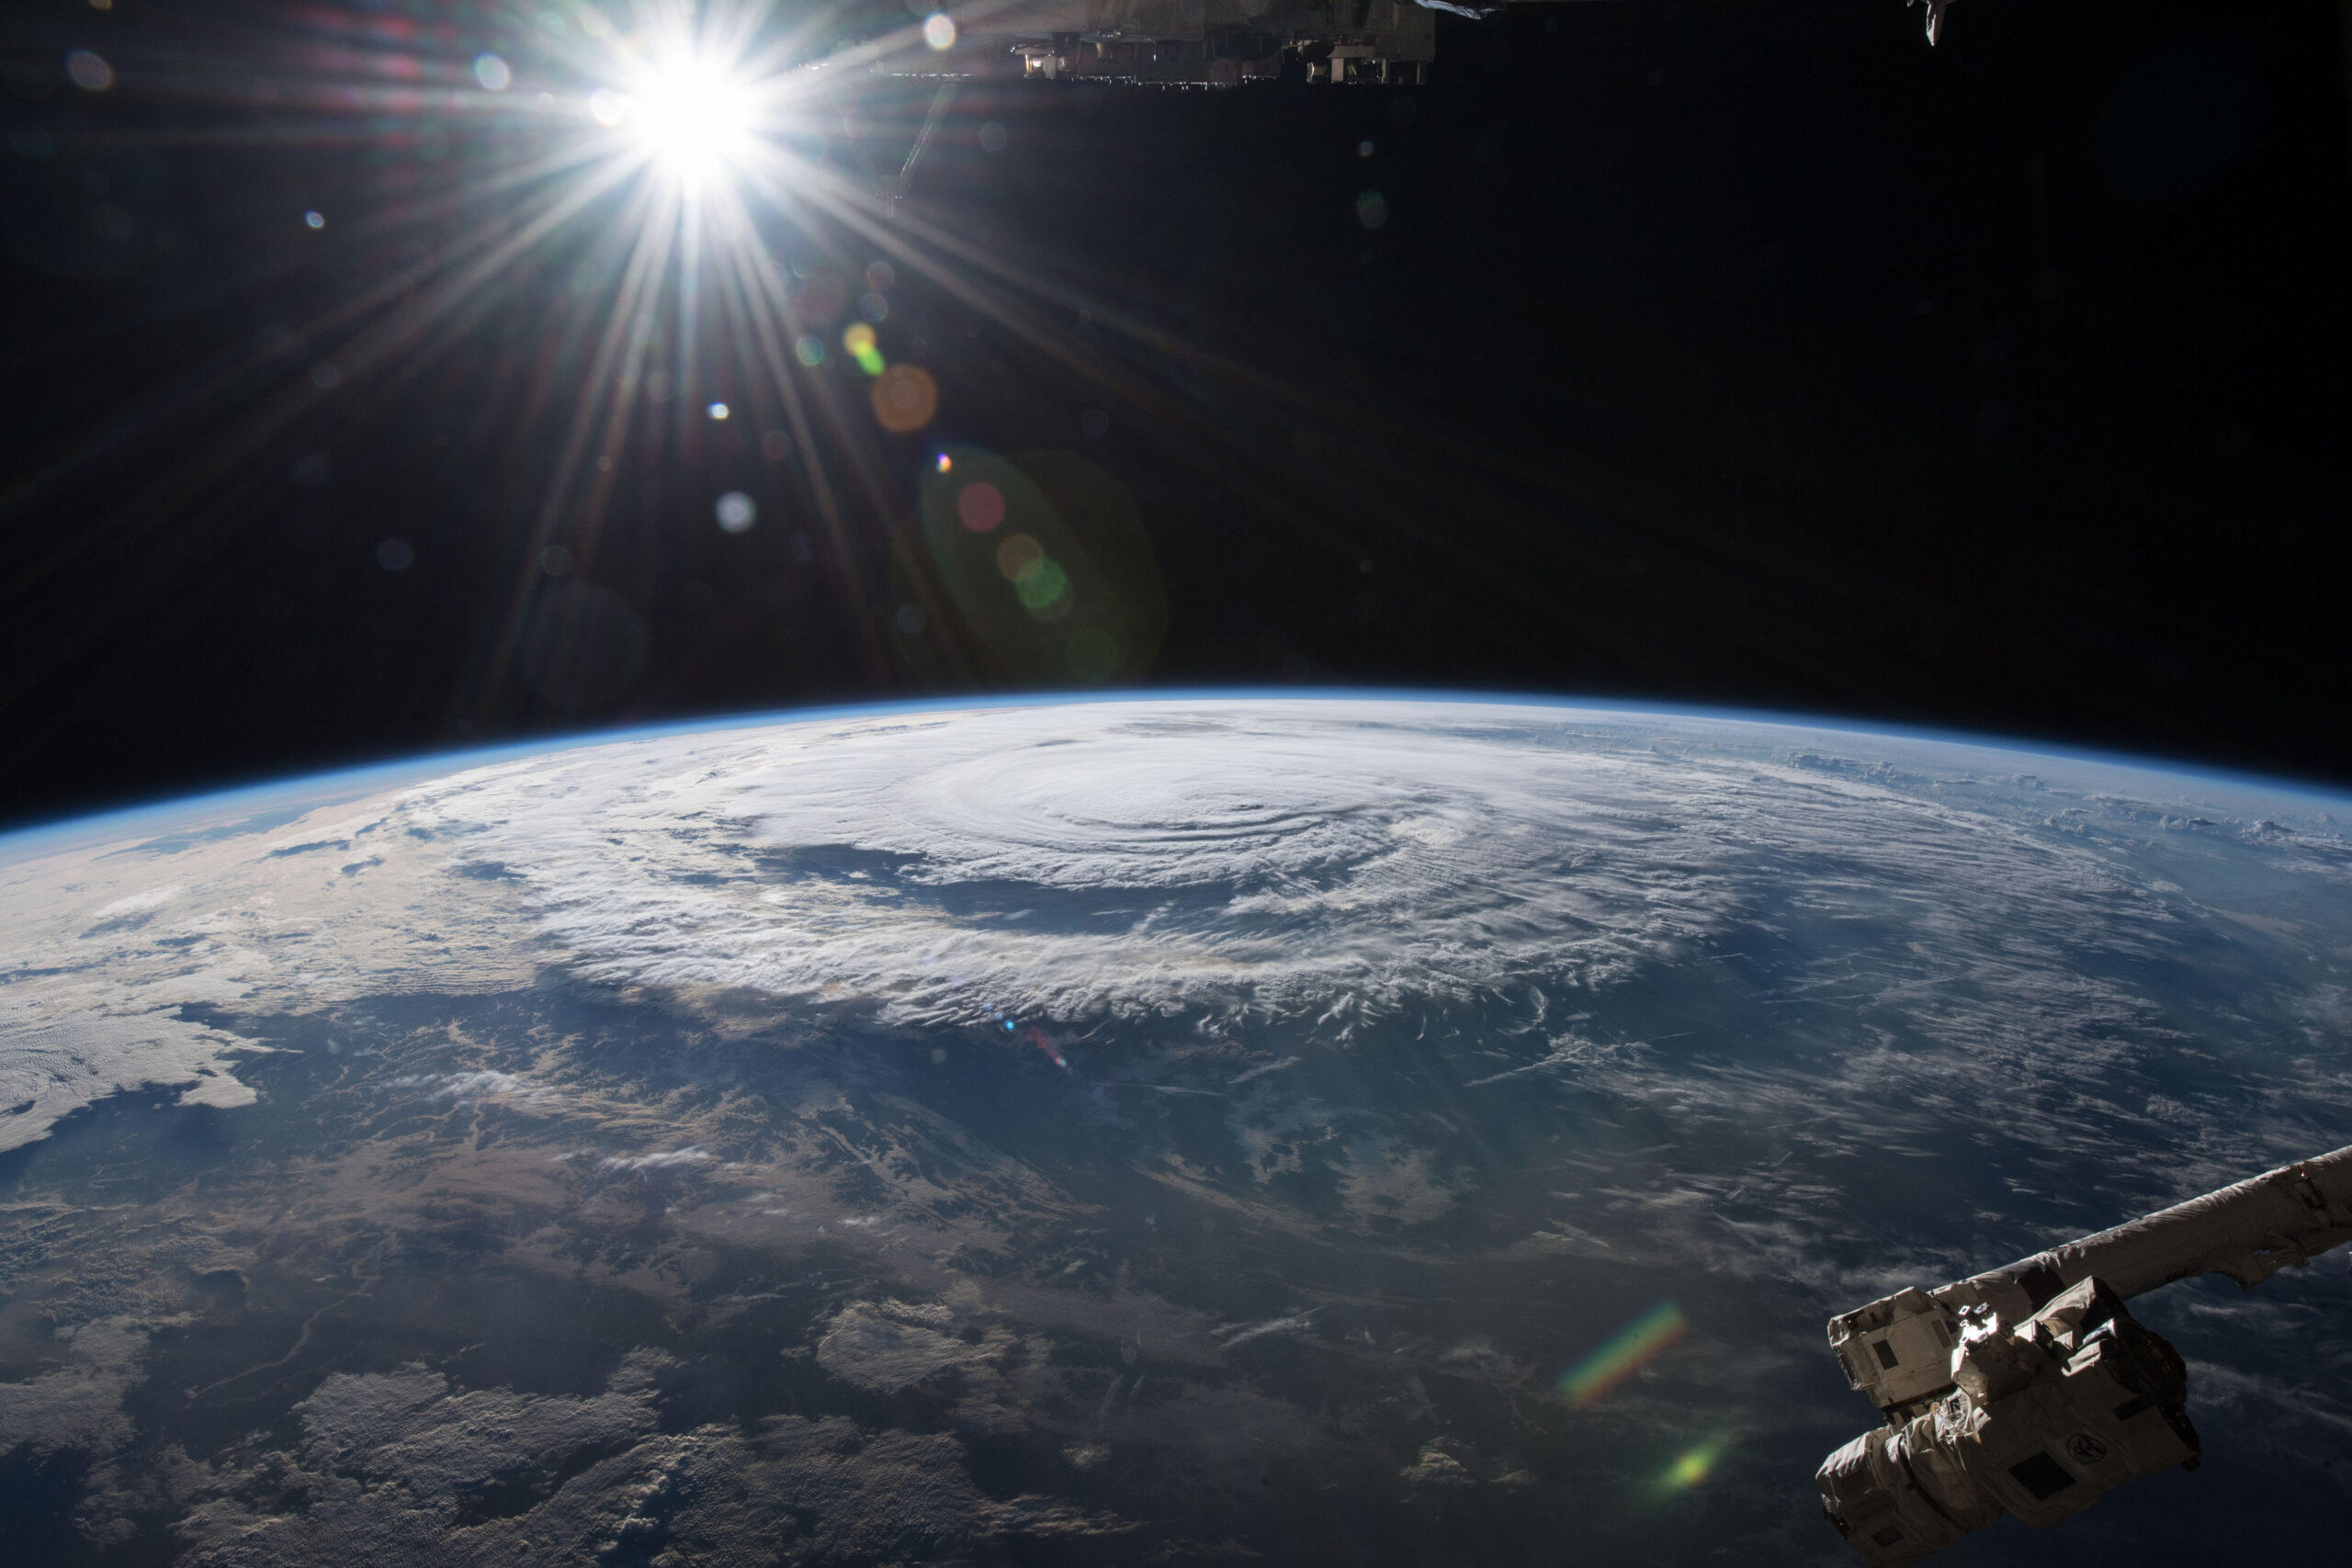 North Carolina, like other states, has struggled to recover from the aftermath of one hurricane after another. The month after Florence (here) made landfall in 2018, Michael moved through the state. Photograph courtesy of NASA.